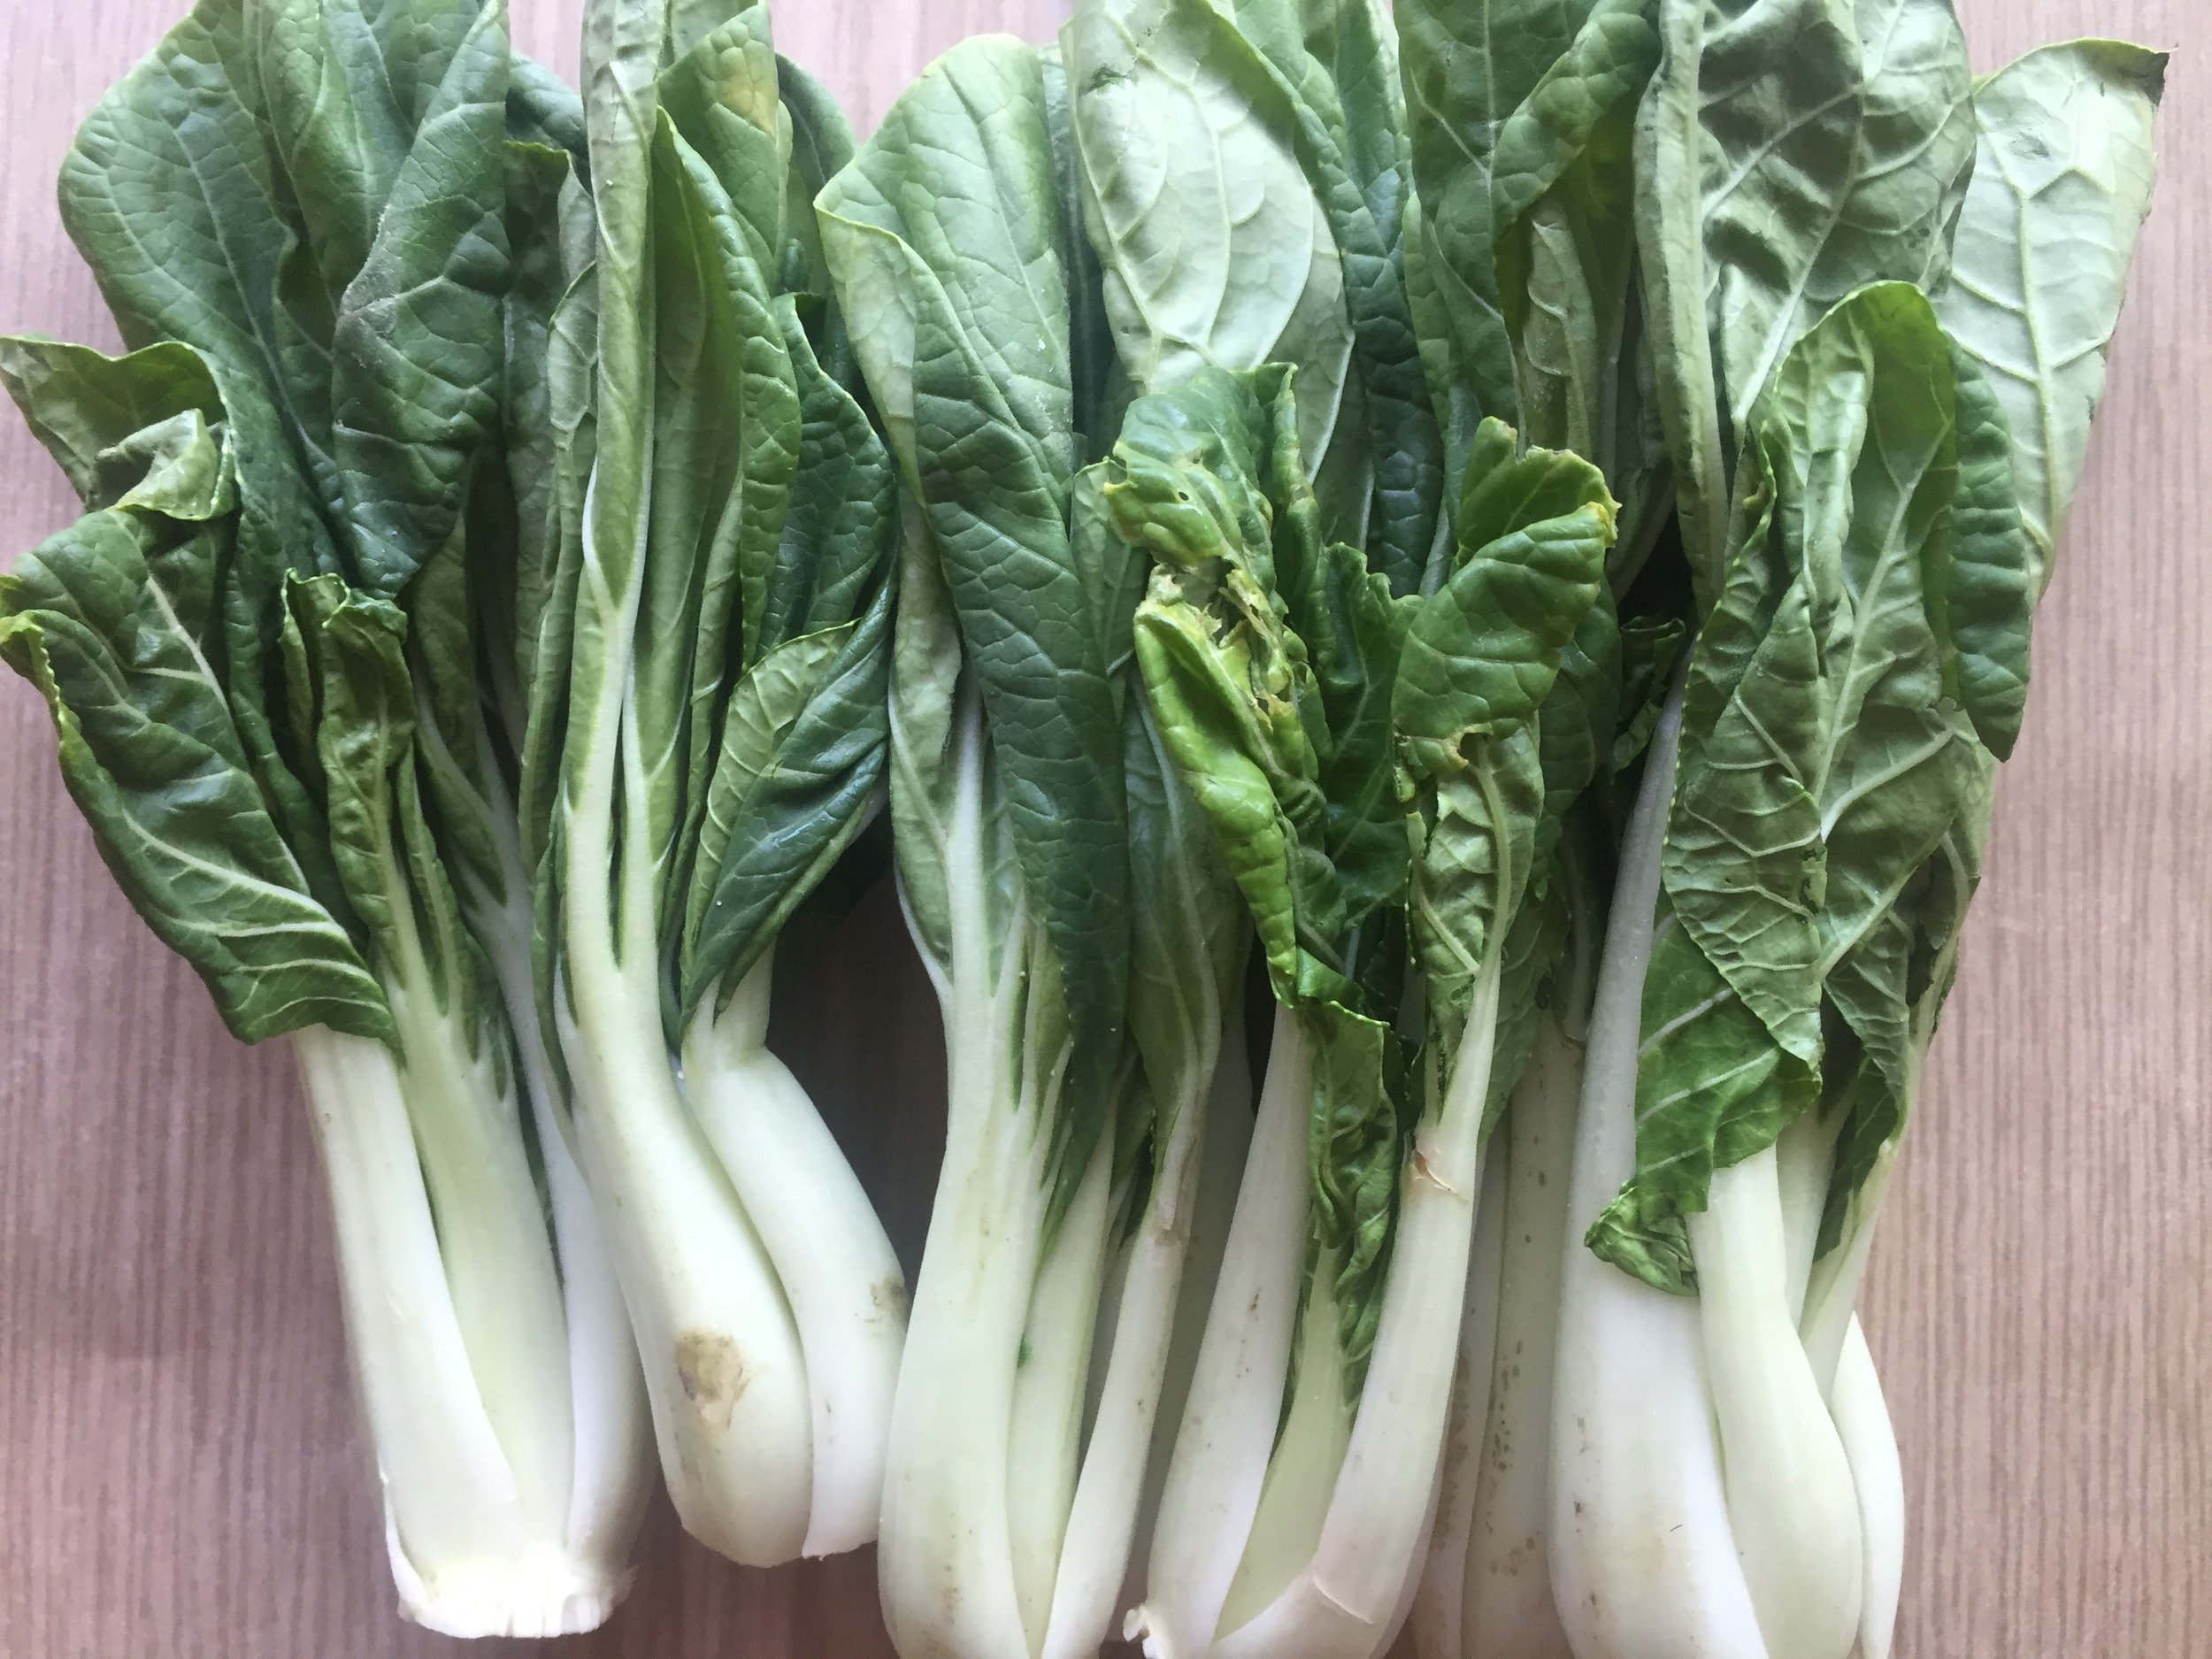 Baby bokchoy can typically be found in Asian grocery stores. Bokchoy is a type of Chinese cabbage. They have a mild taste and are most used in soups.